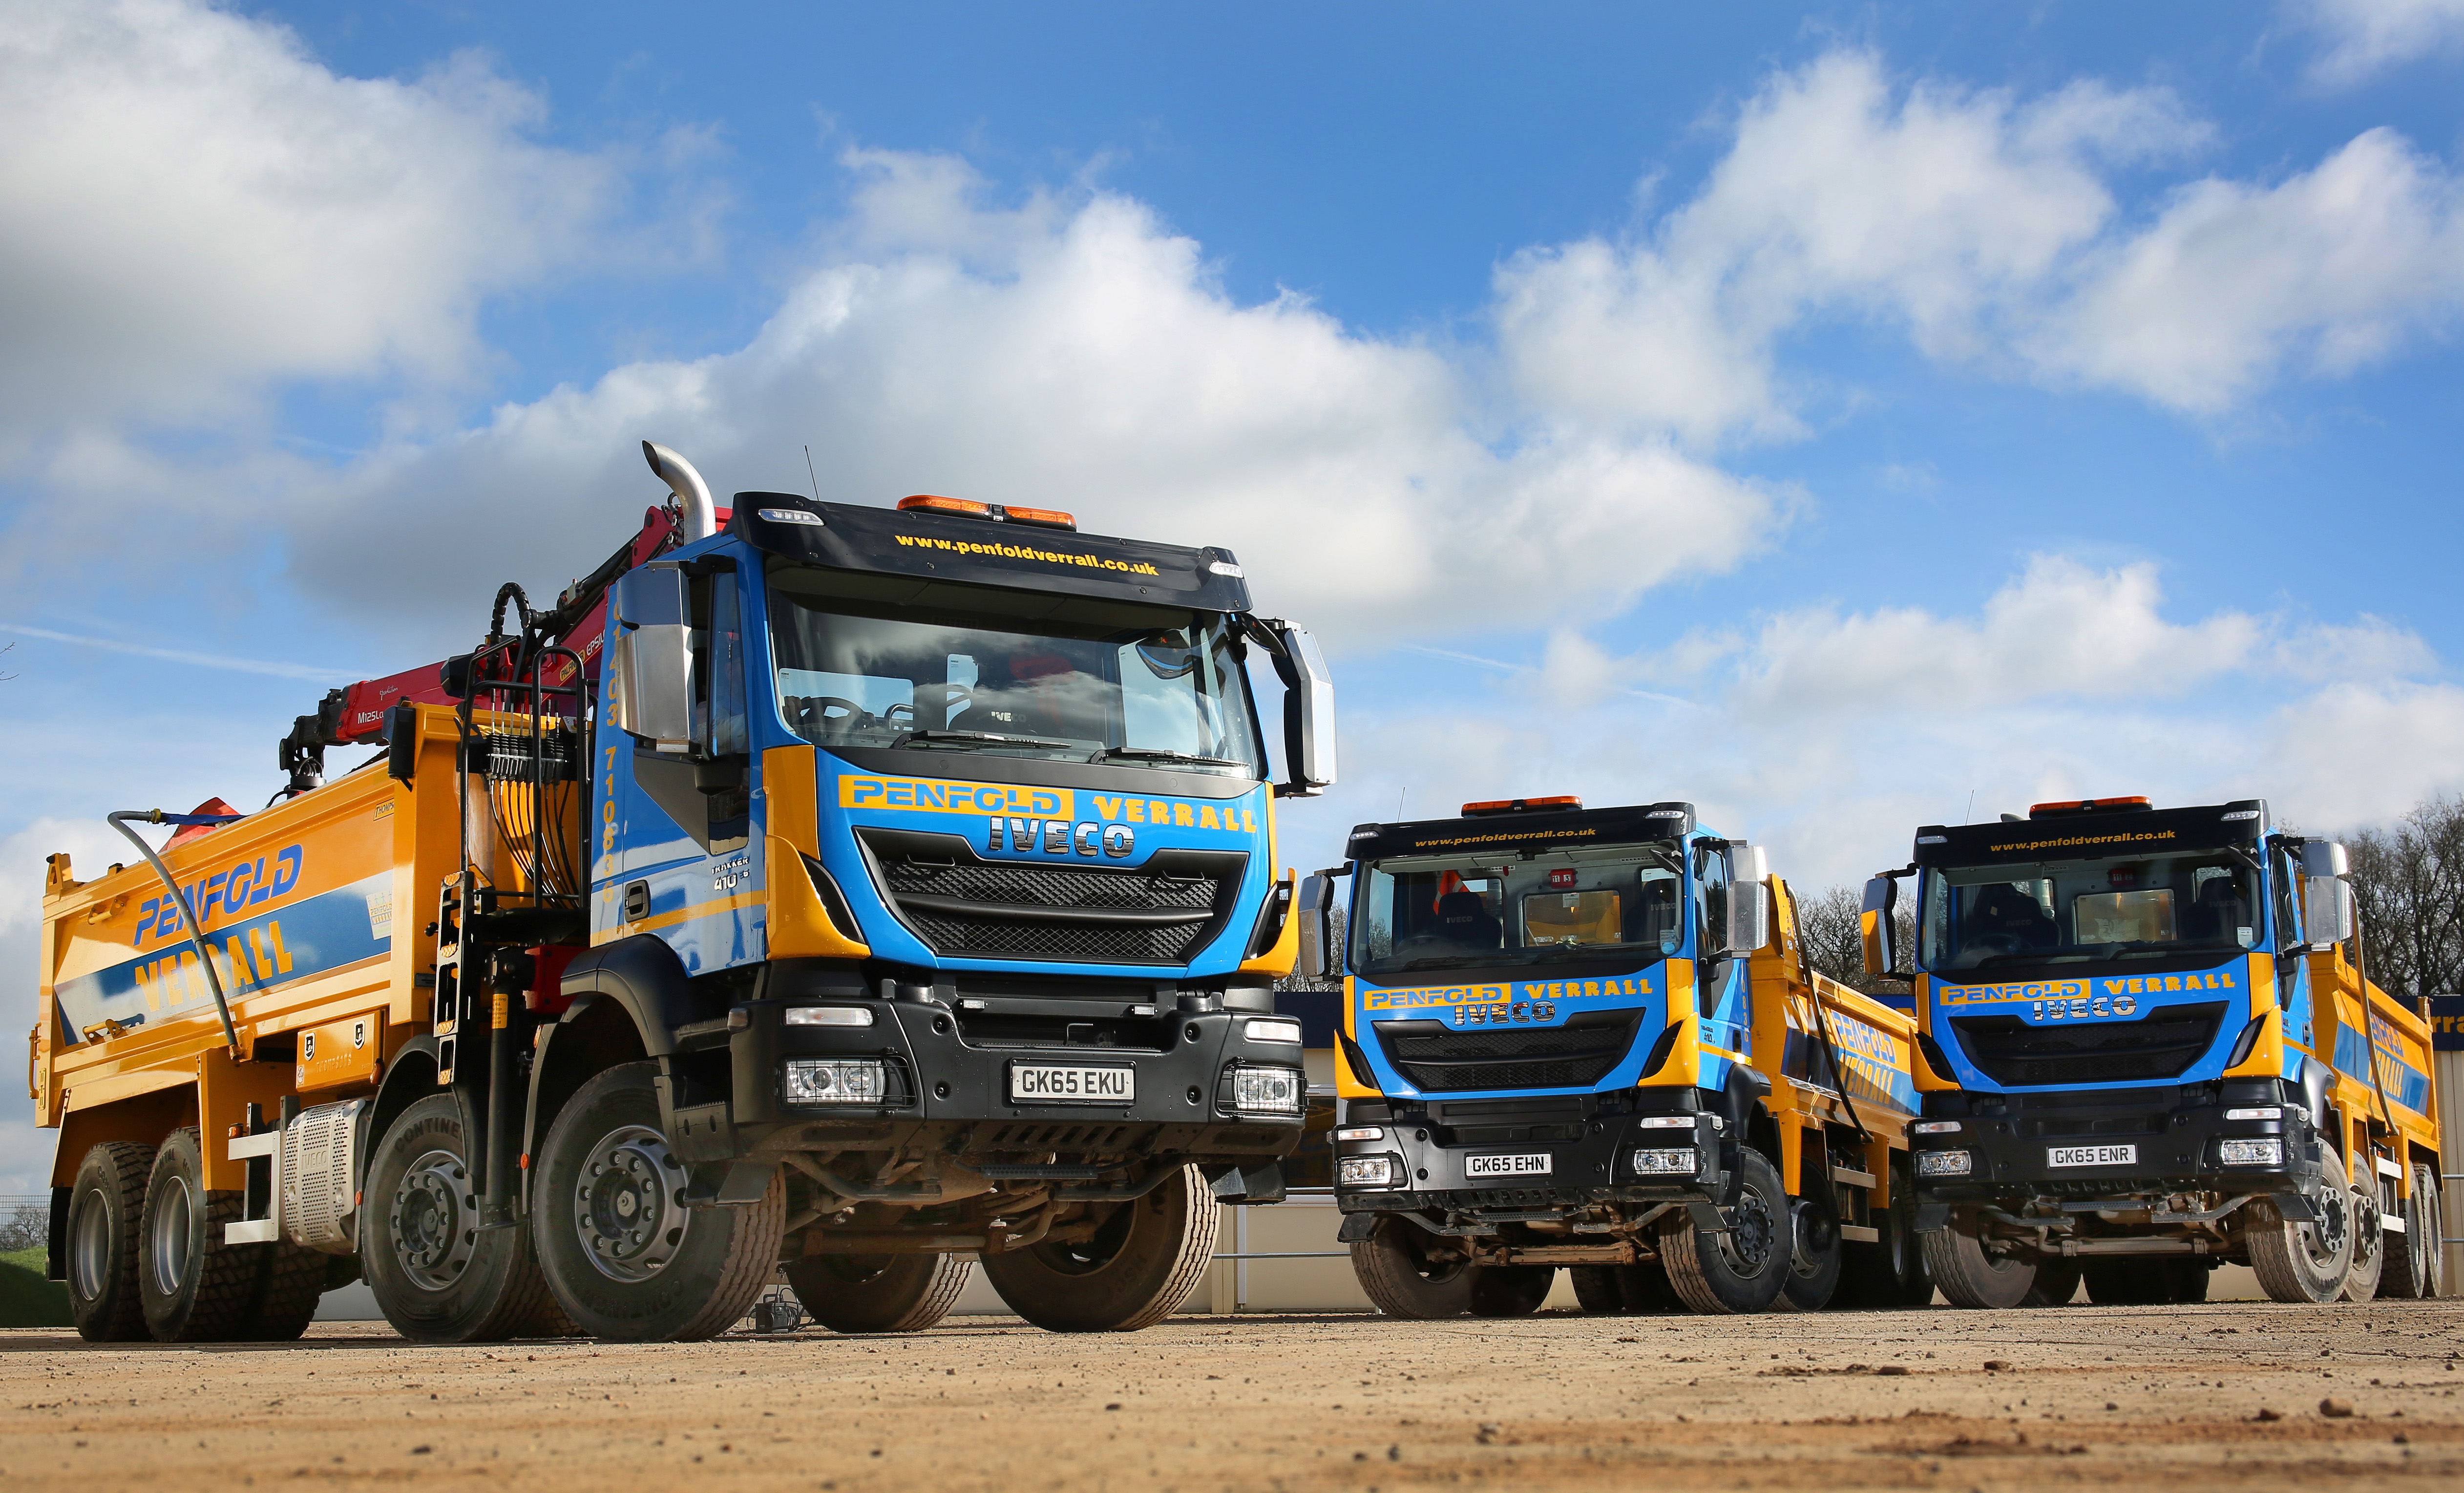 Construction Support Firm Penfold Verrall Builds Up Tipper